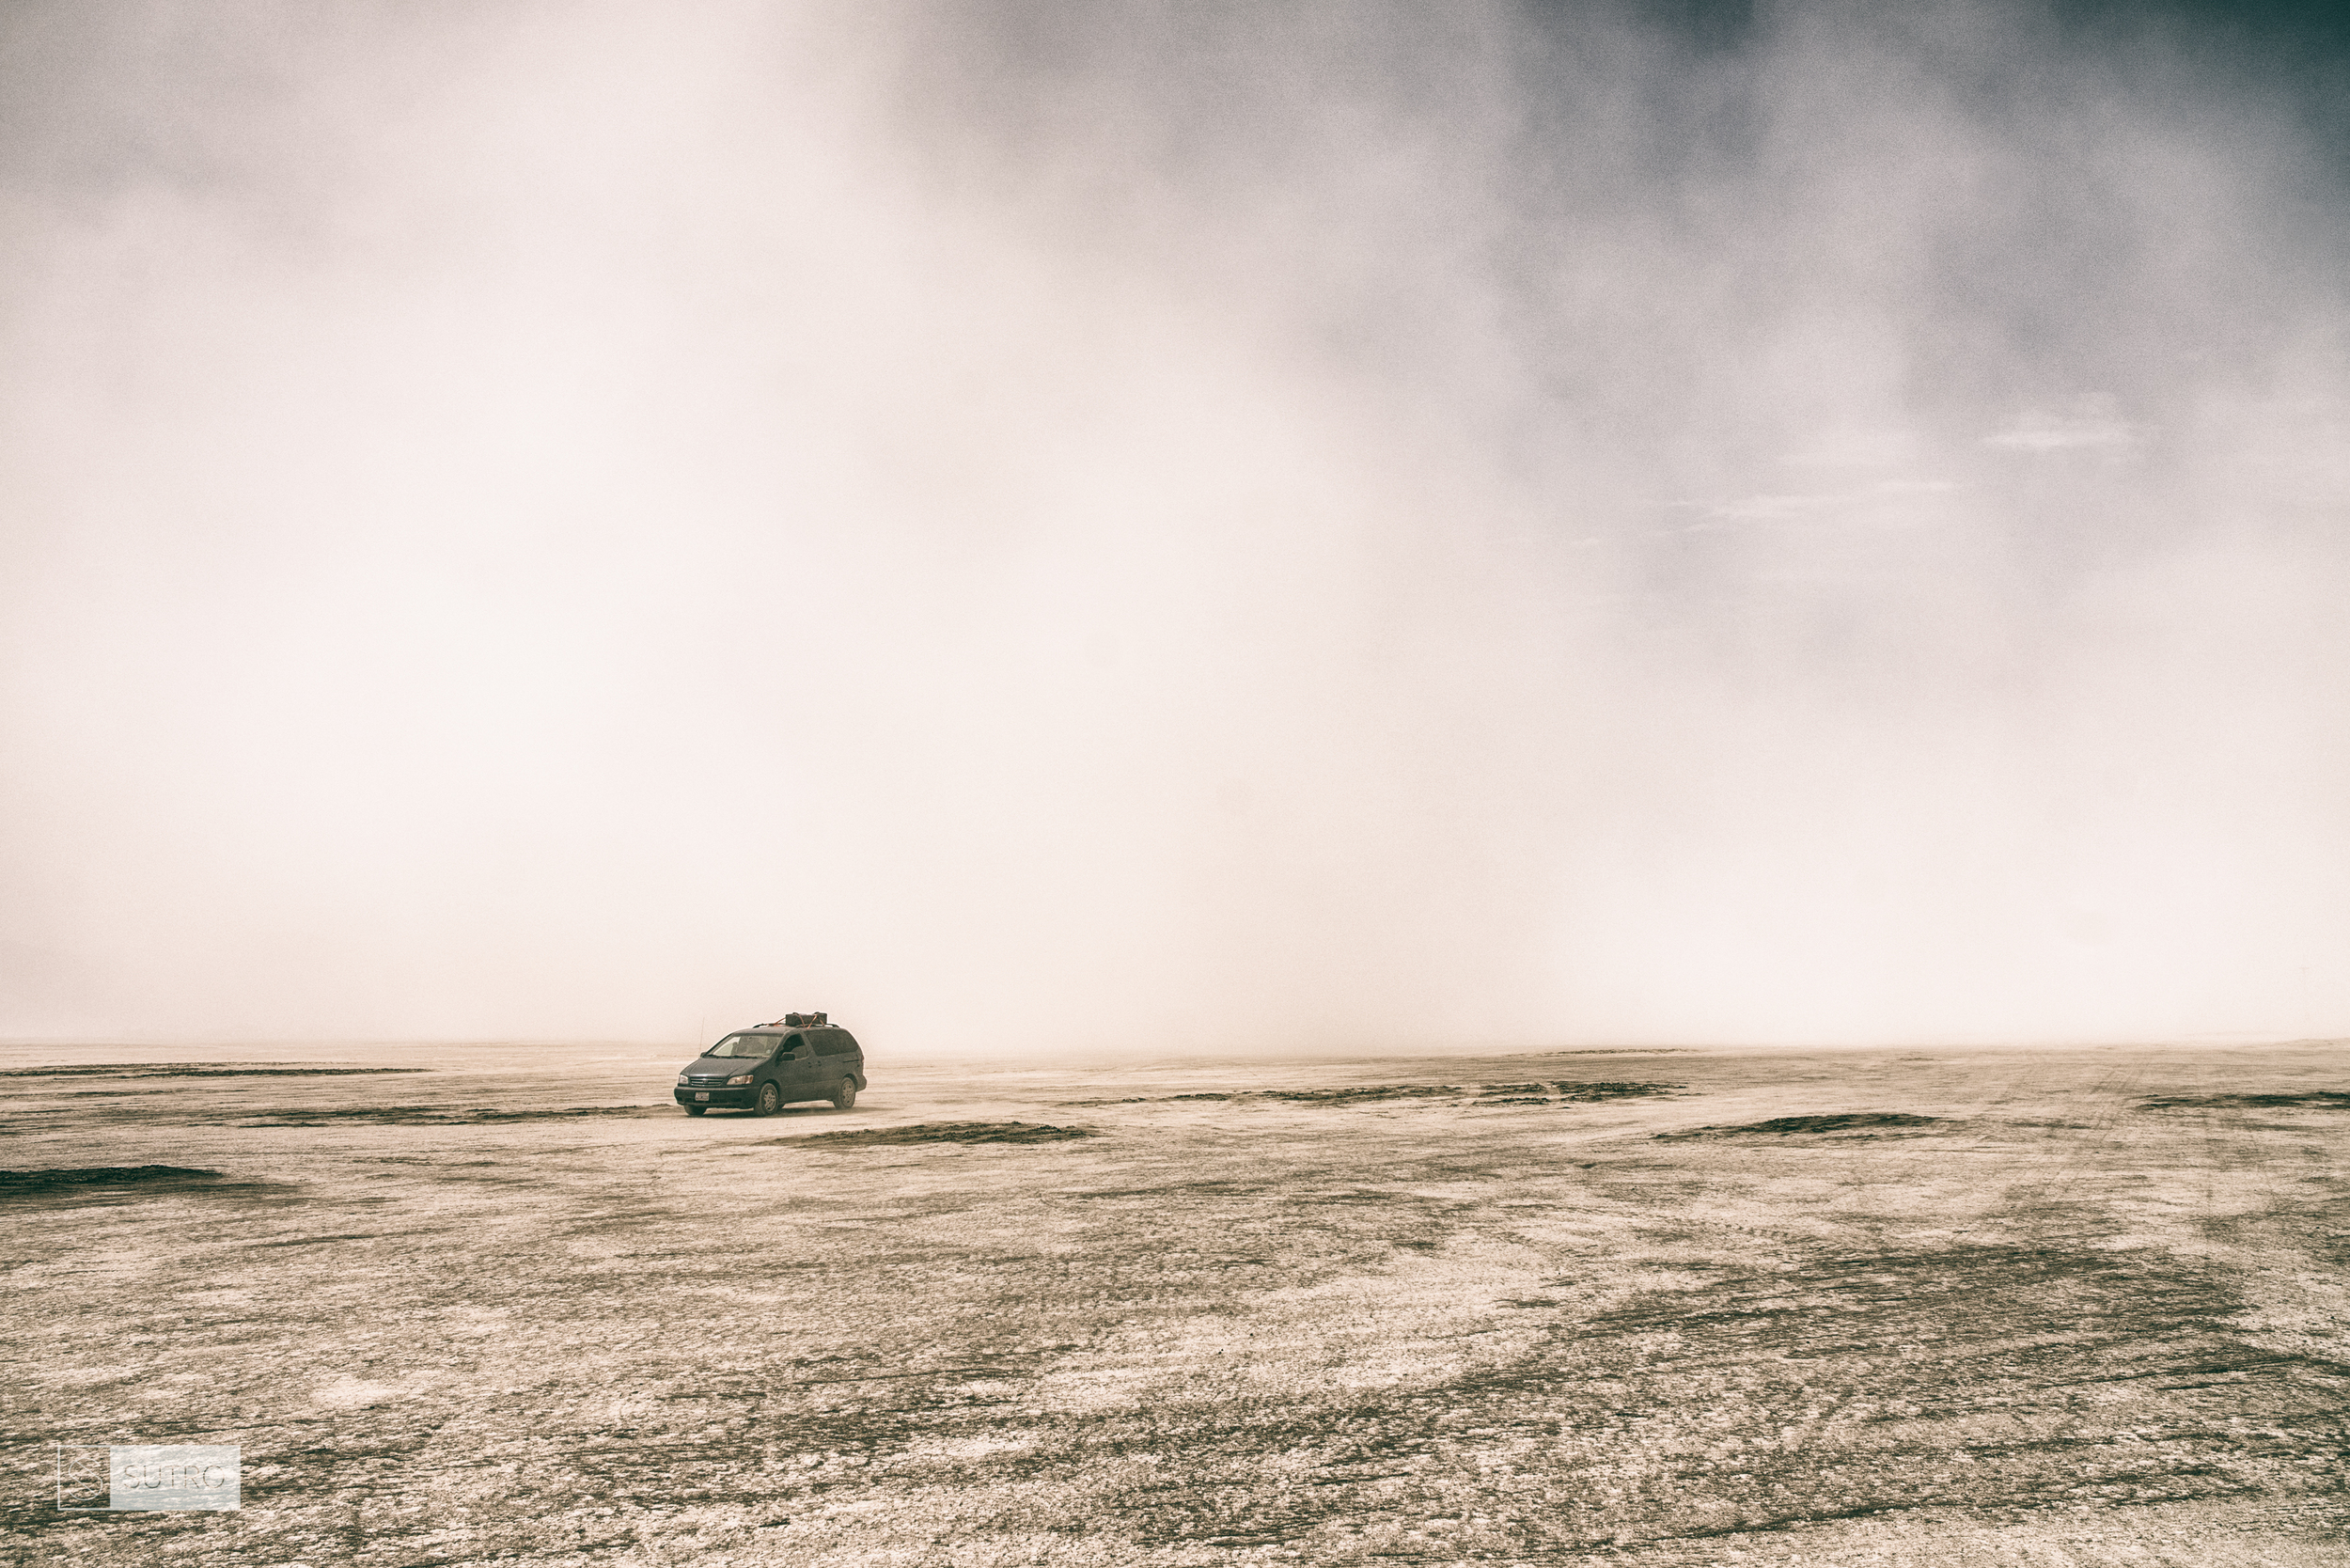 Typical dust storm on the Playa quietly approaching a car close to the Temple of Promise construction site.